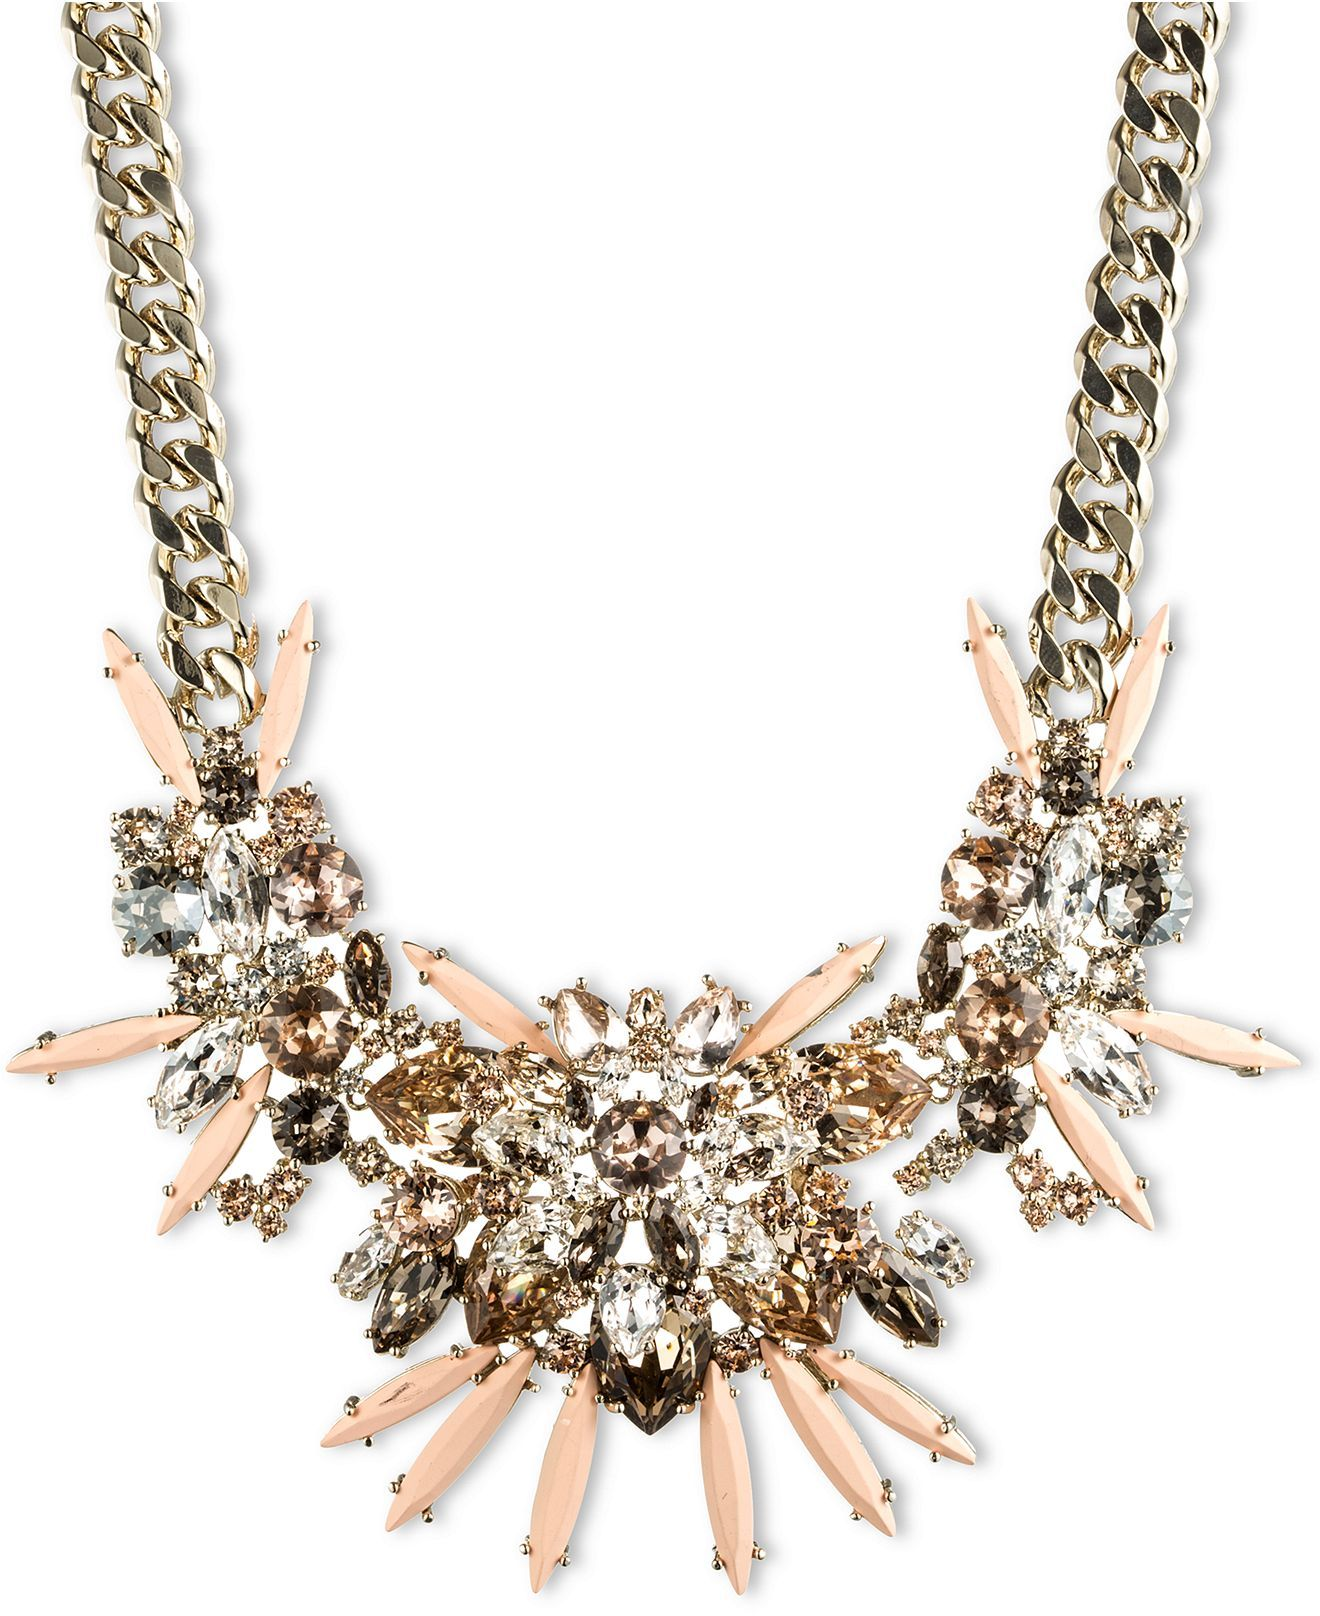 Givenchy 10k Gold Plated Colorful Crystal Statement Necklace Fashion Jewelry Jewelry Watches Crystal Statement Necklace Jewelry Fashion Jewelry Necklaces